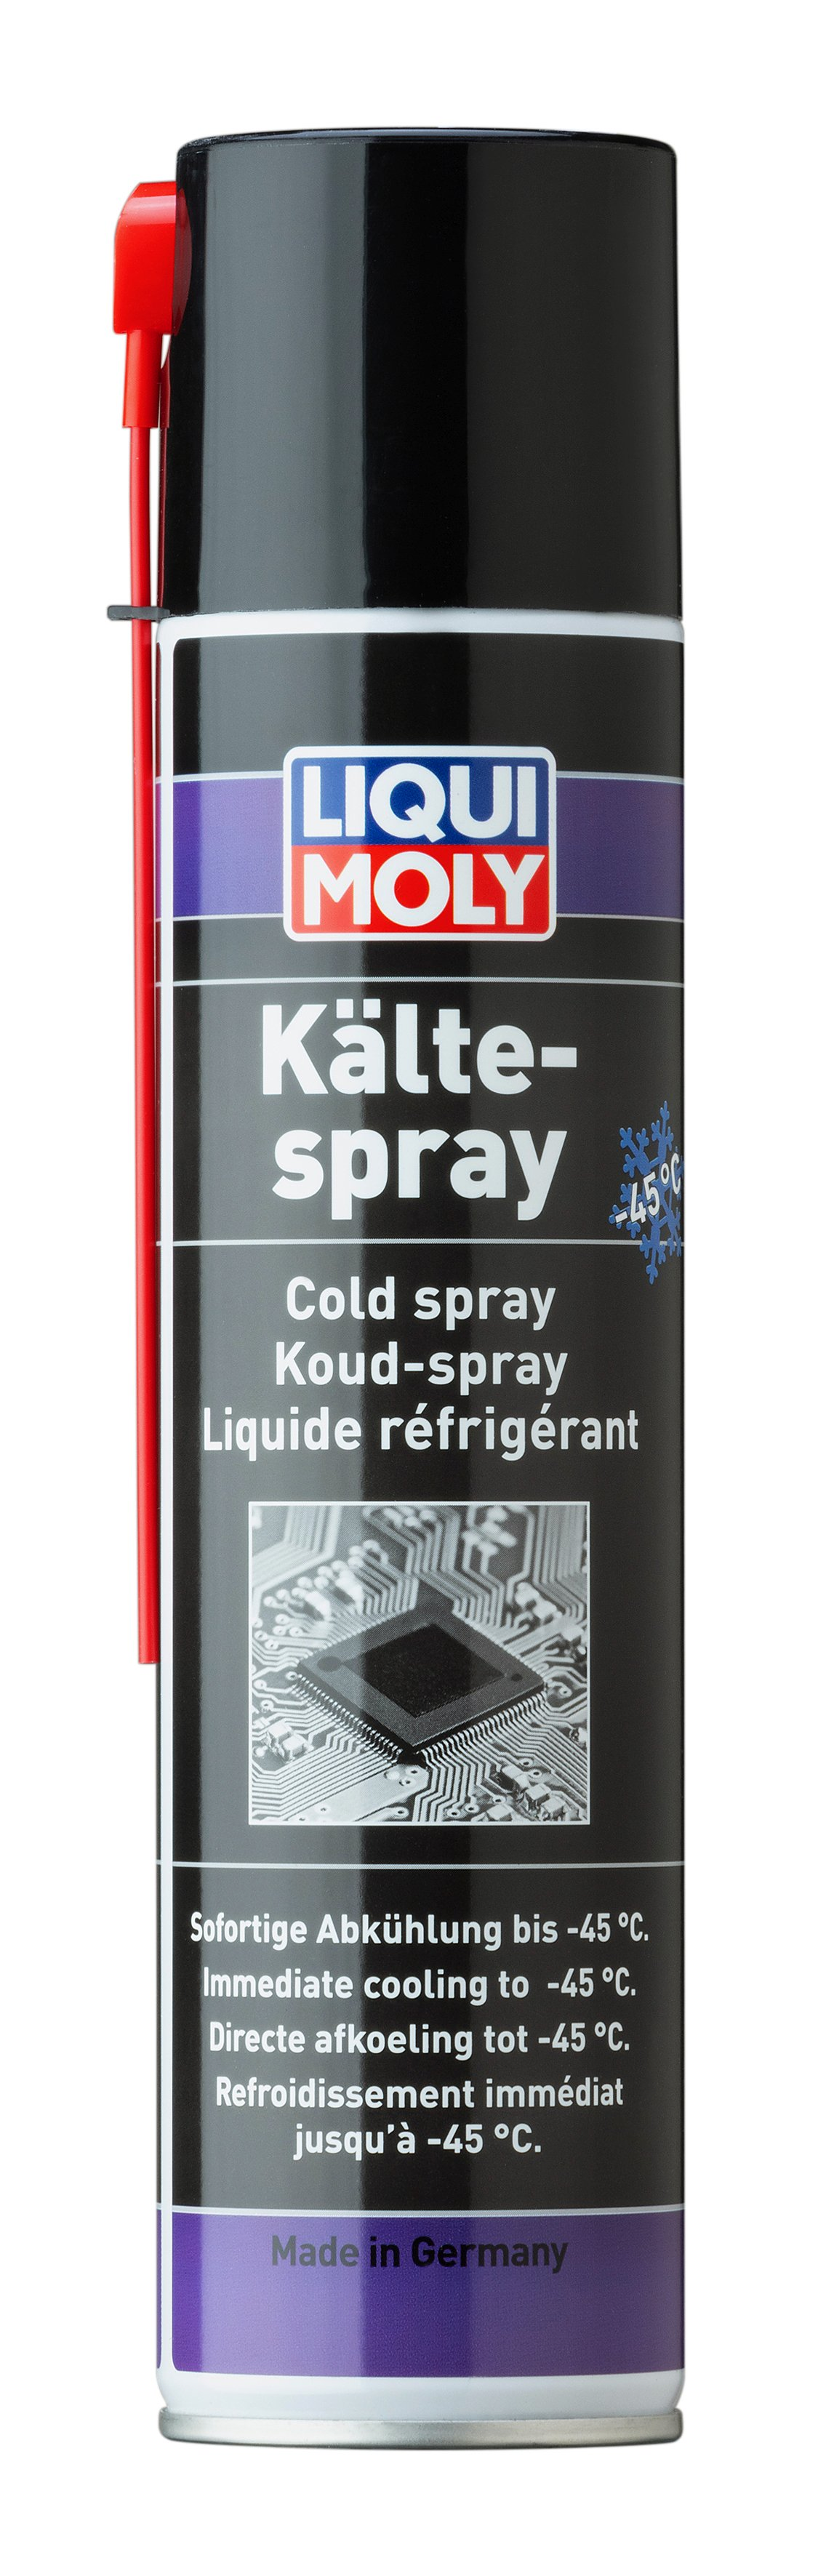 Kältespray, 400ml